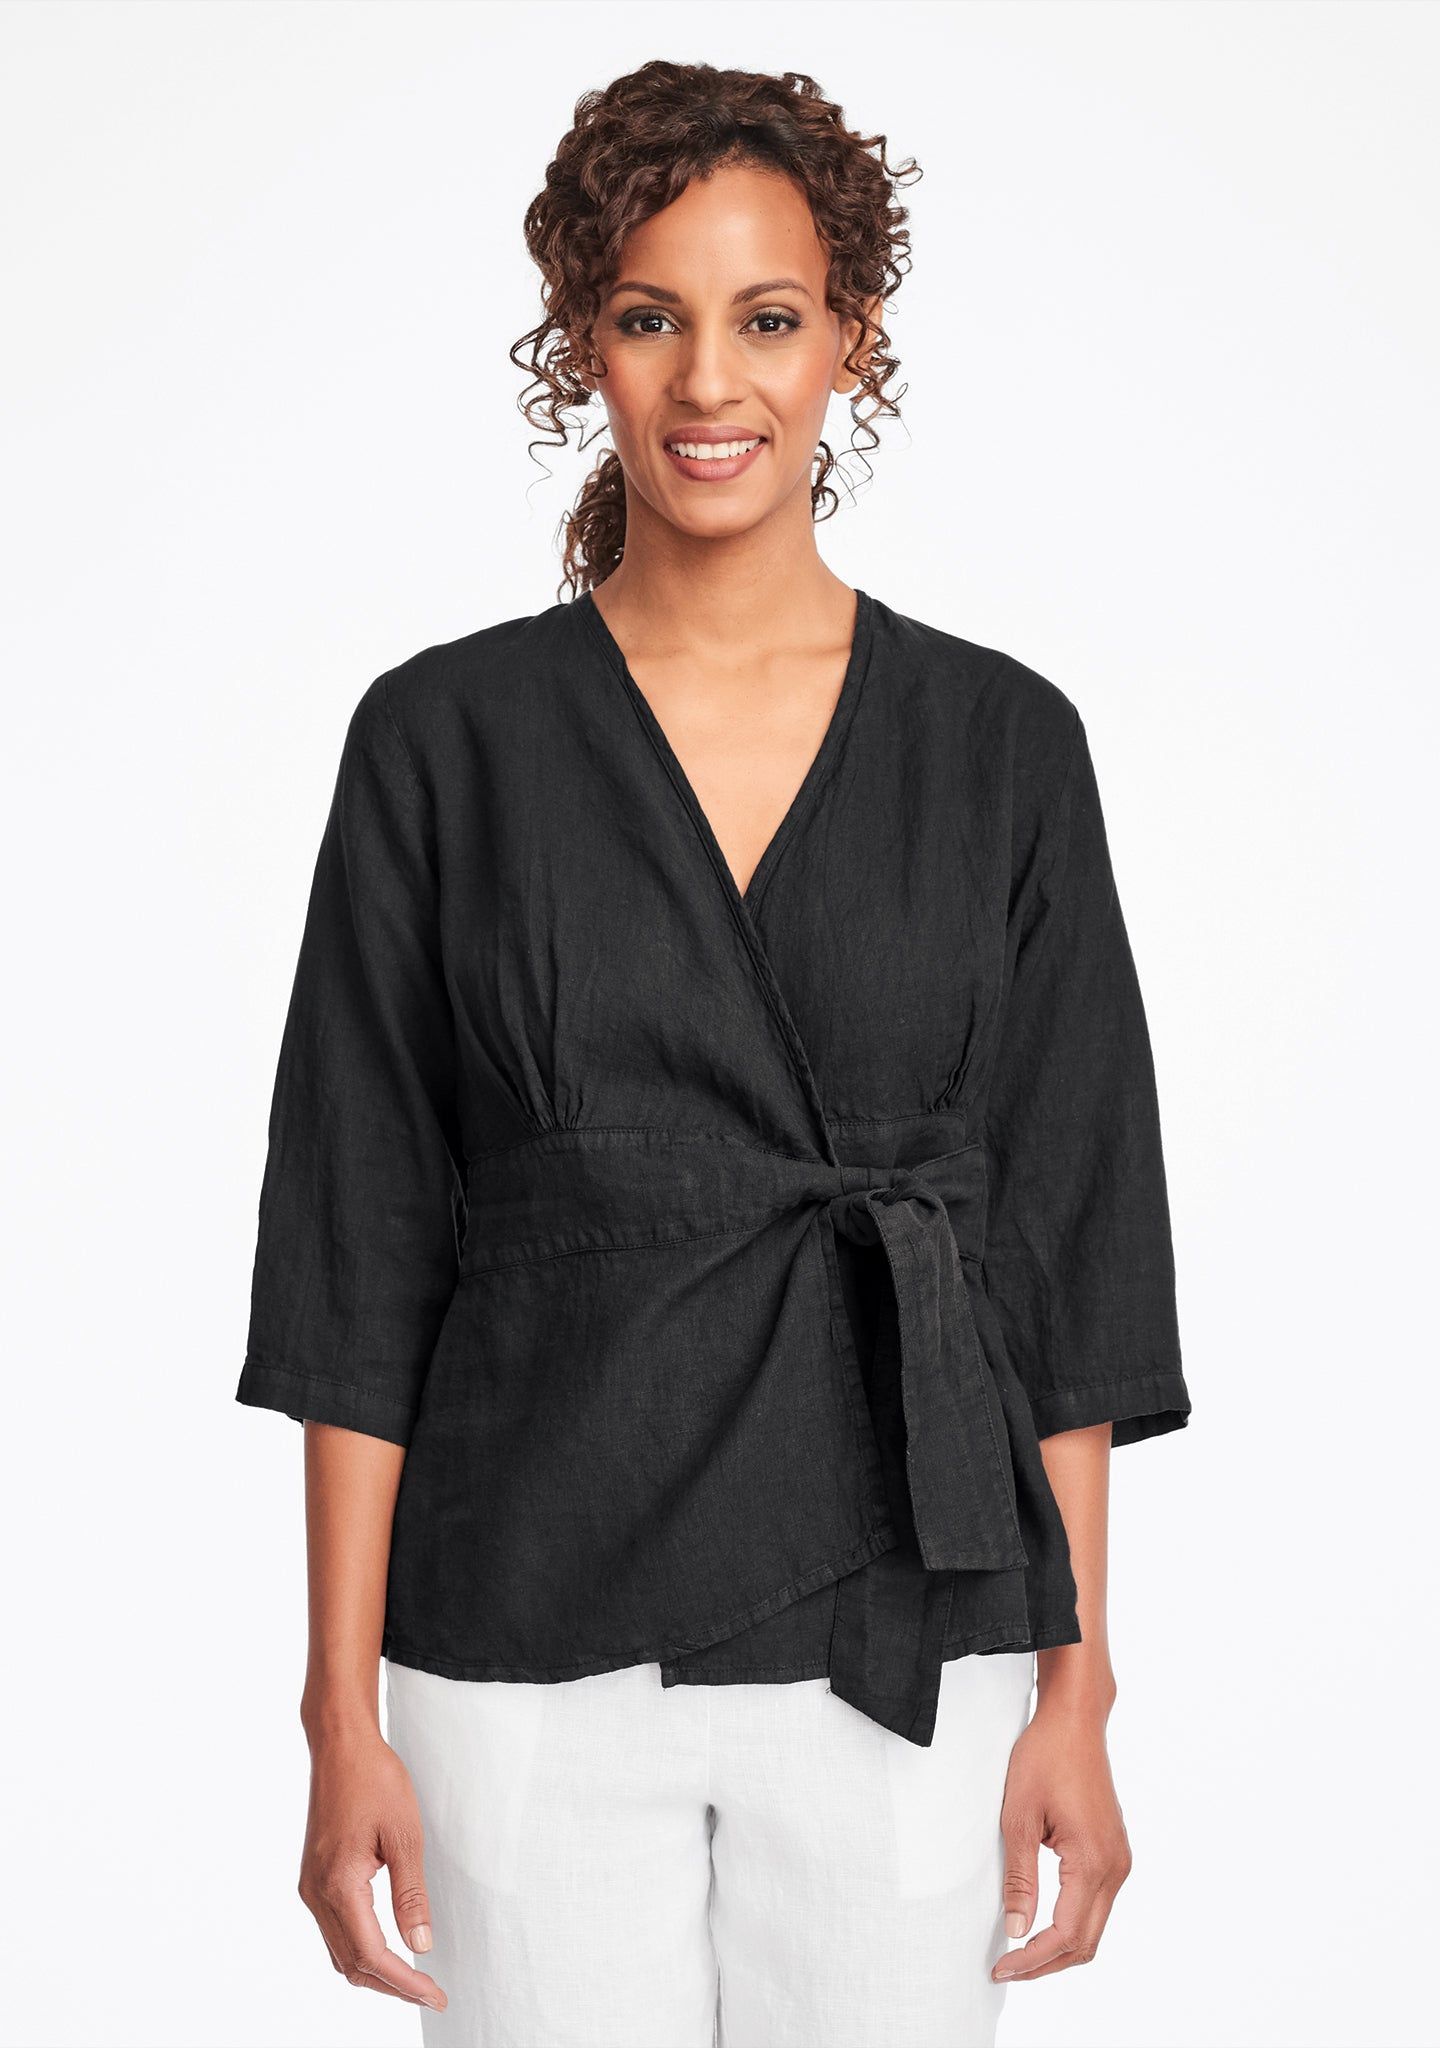 secure blouse linen blouse black